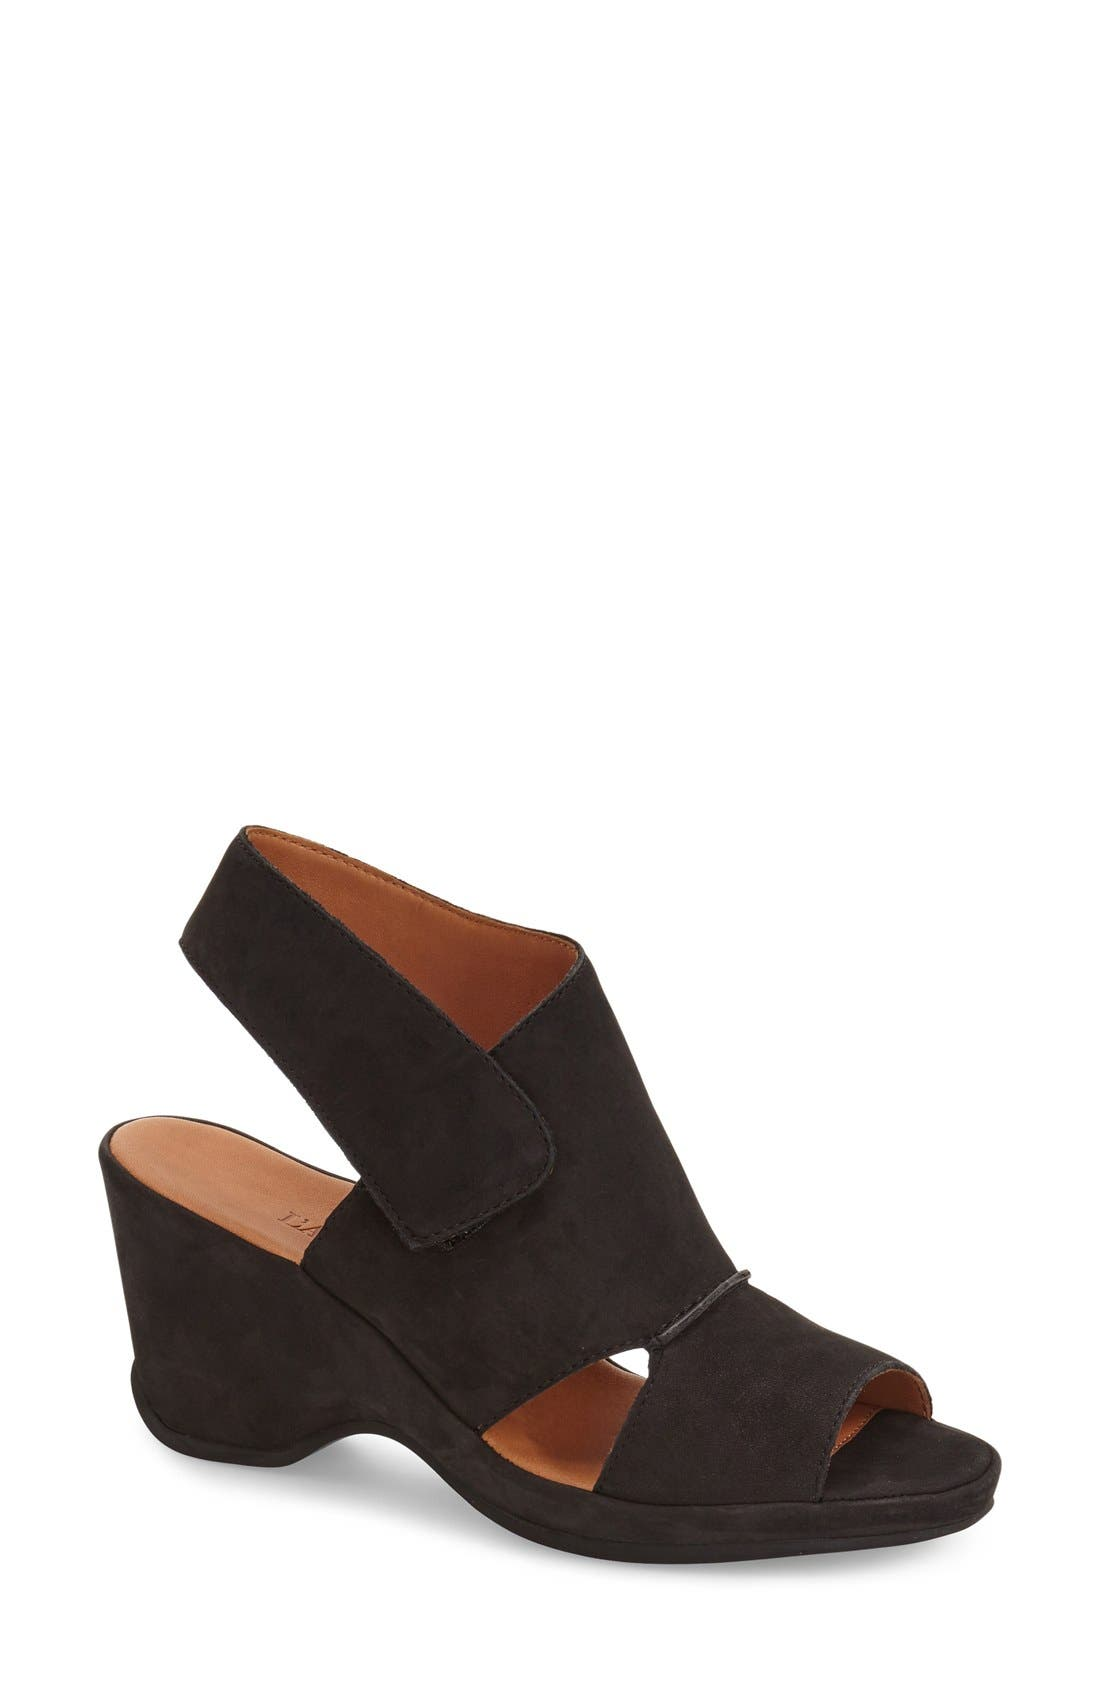 'Oswin' Peep Toe Demi Wedge Sandal,                             Main thumbnail 1, color,                             Black Nubuck Leather